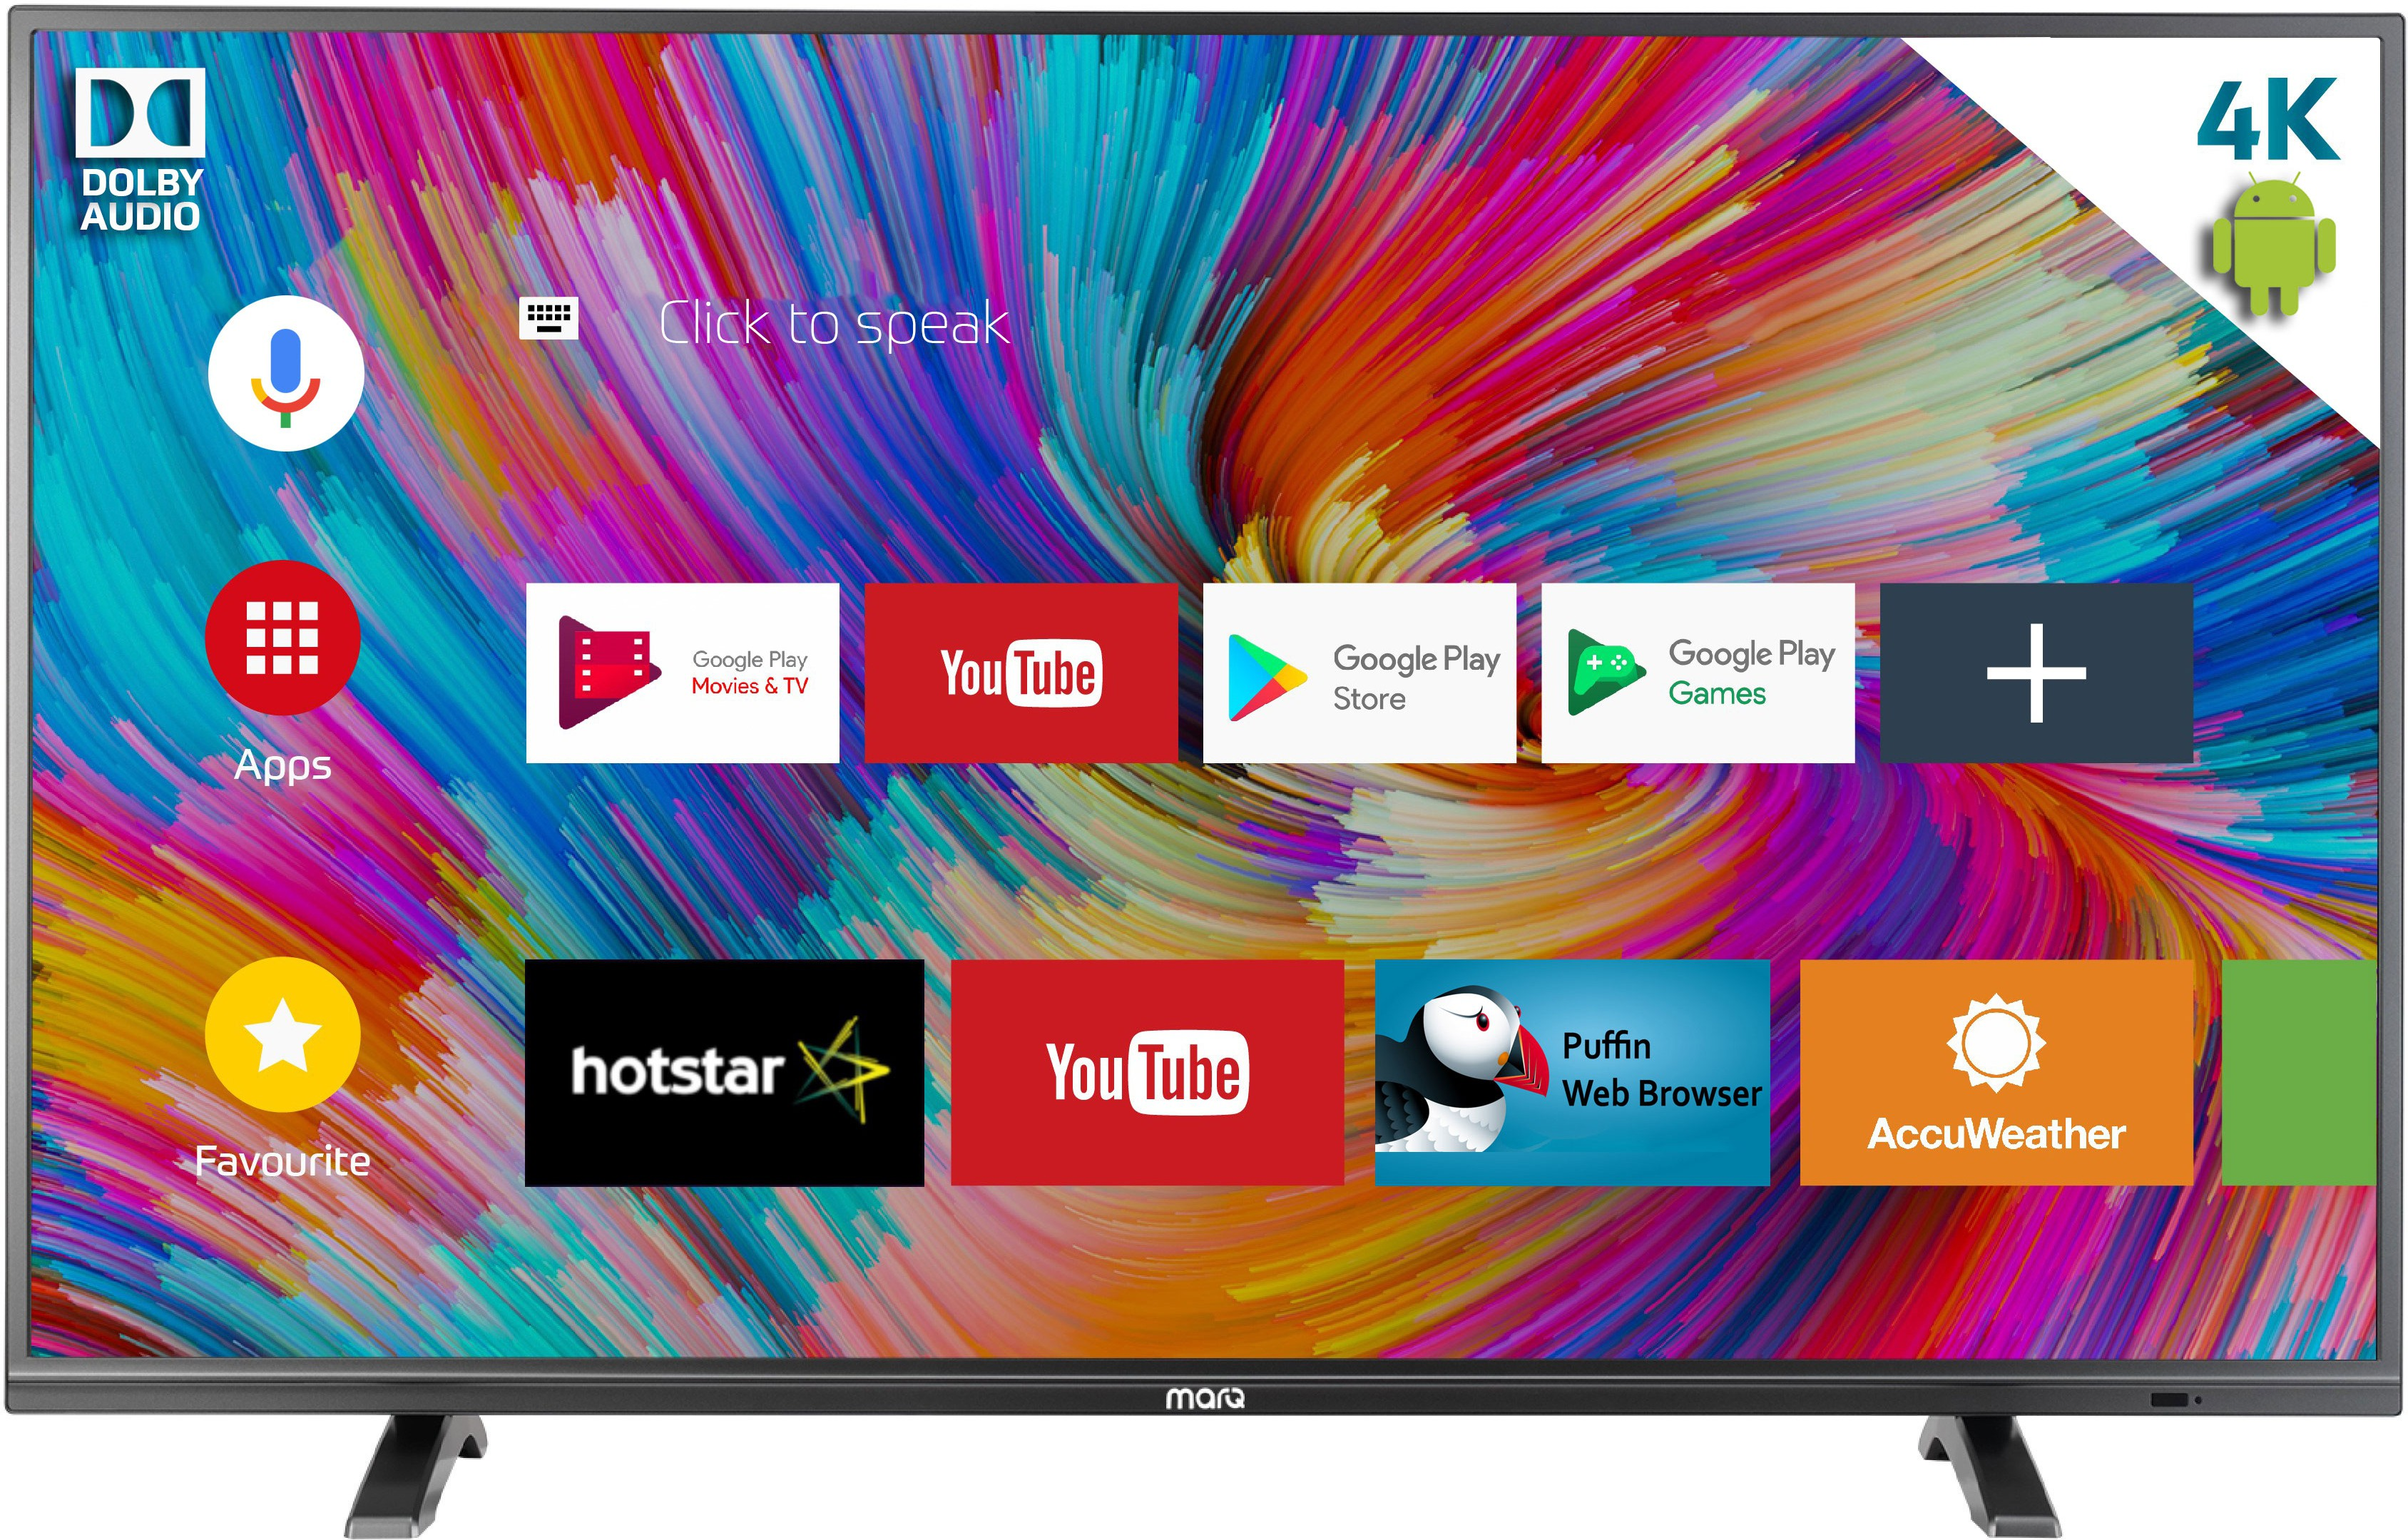 MarQ by Flipkart Dolby Certified Android (49 inch) Ultra HD (4K) Smart LED TV Image